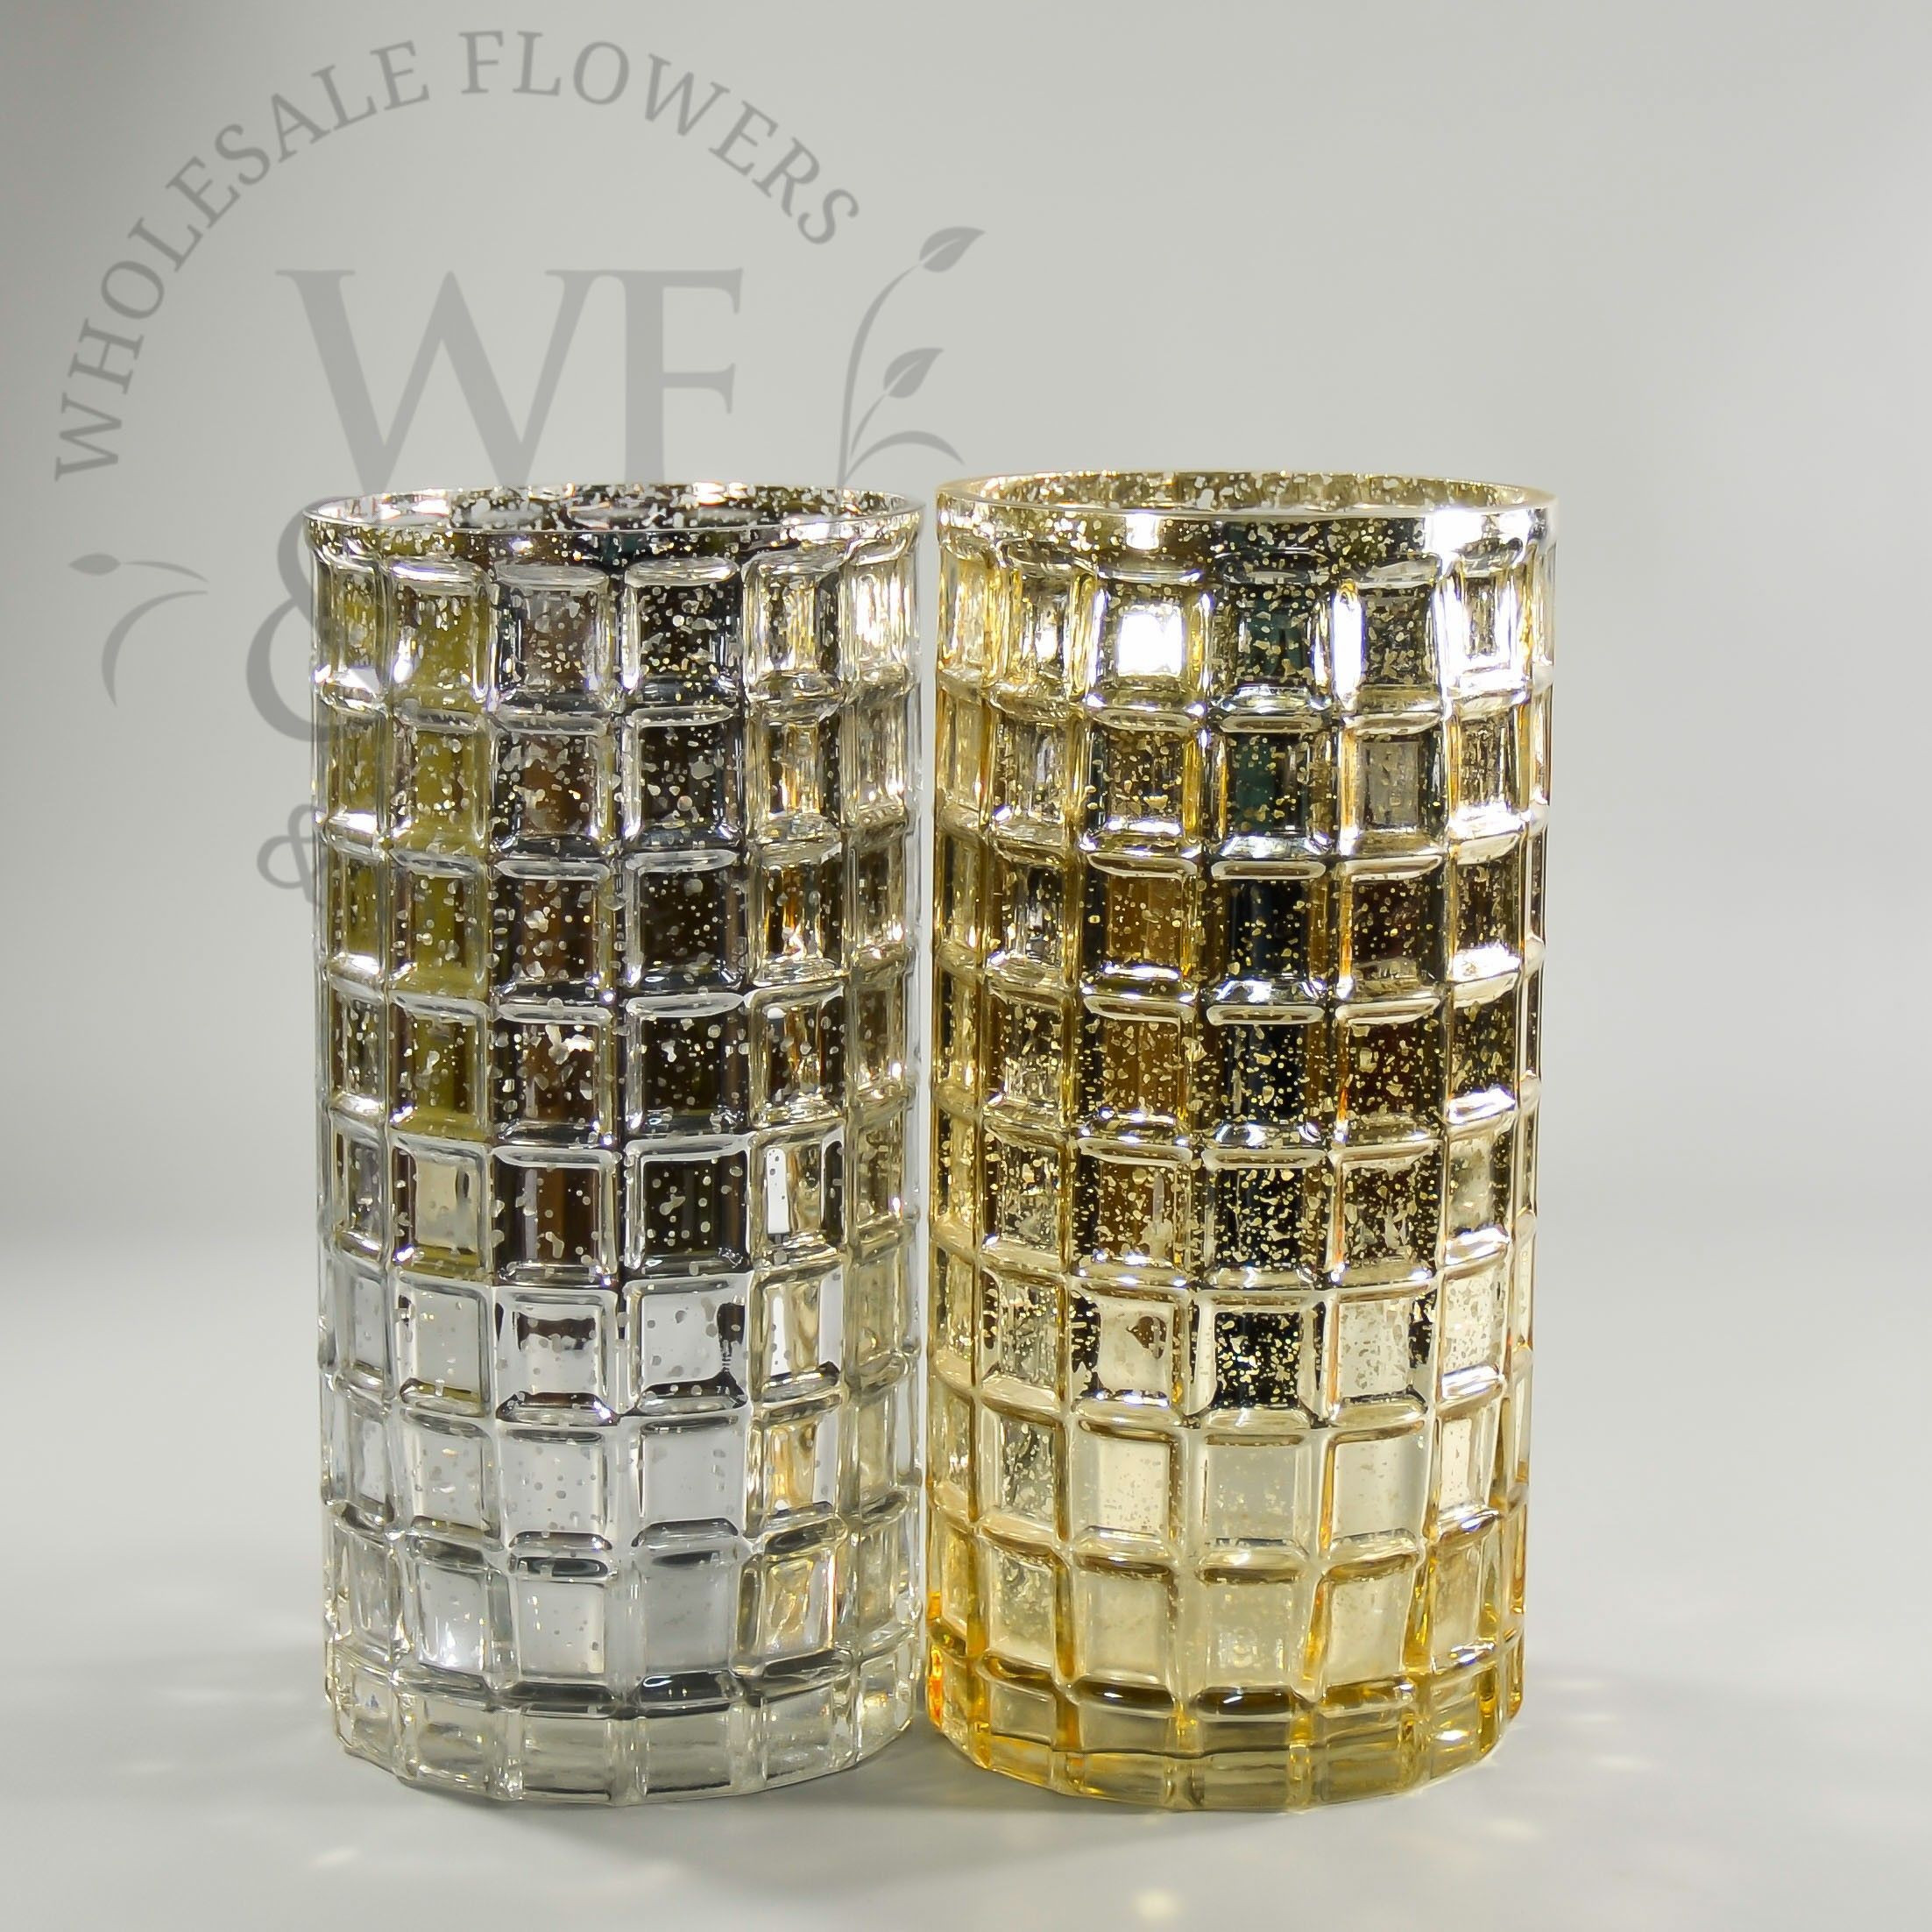 15 Perfect Glass Mosaic Vases wholesale 2021 free download glass mosaic vases wholesale of photos of gold cylinder vases vases artificial plants collection with regard to gold cylinder vases collection silver and gold mercury glass mosaic cylinder v